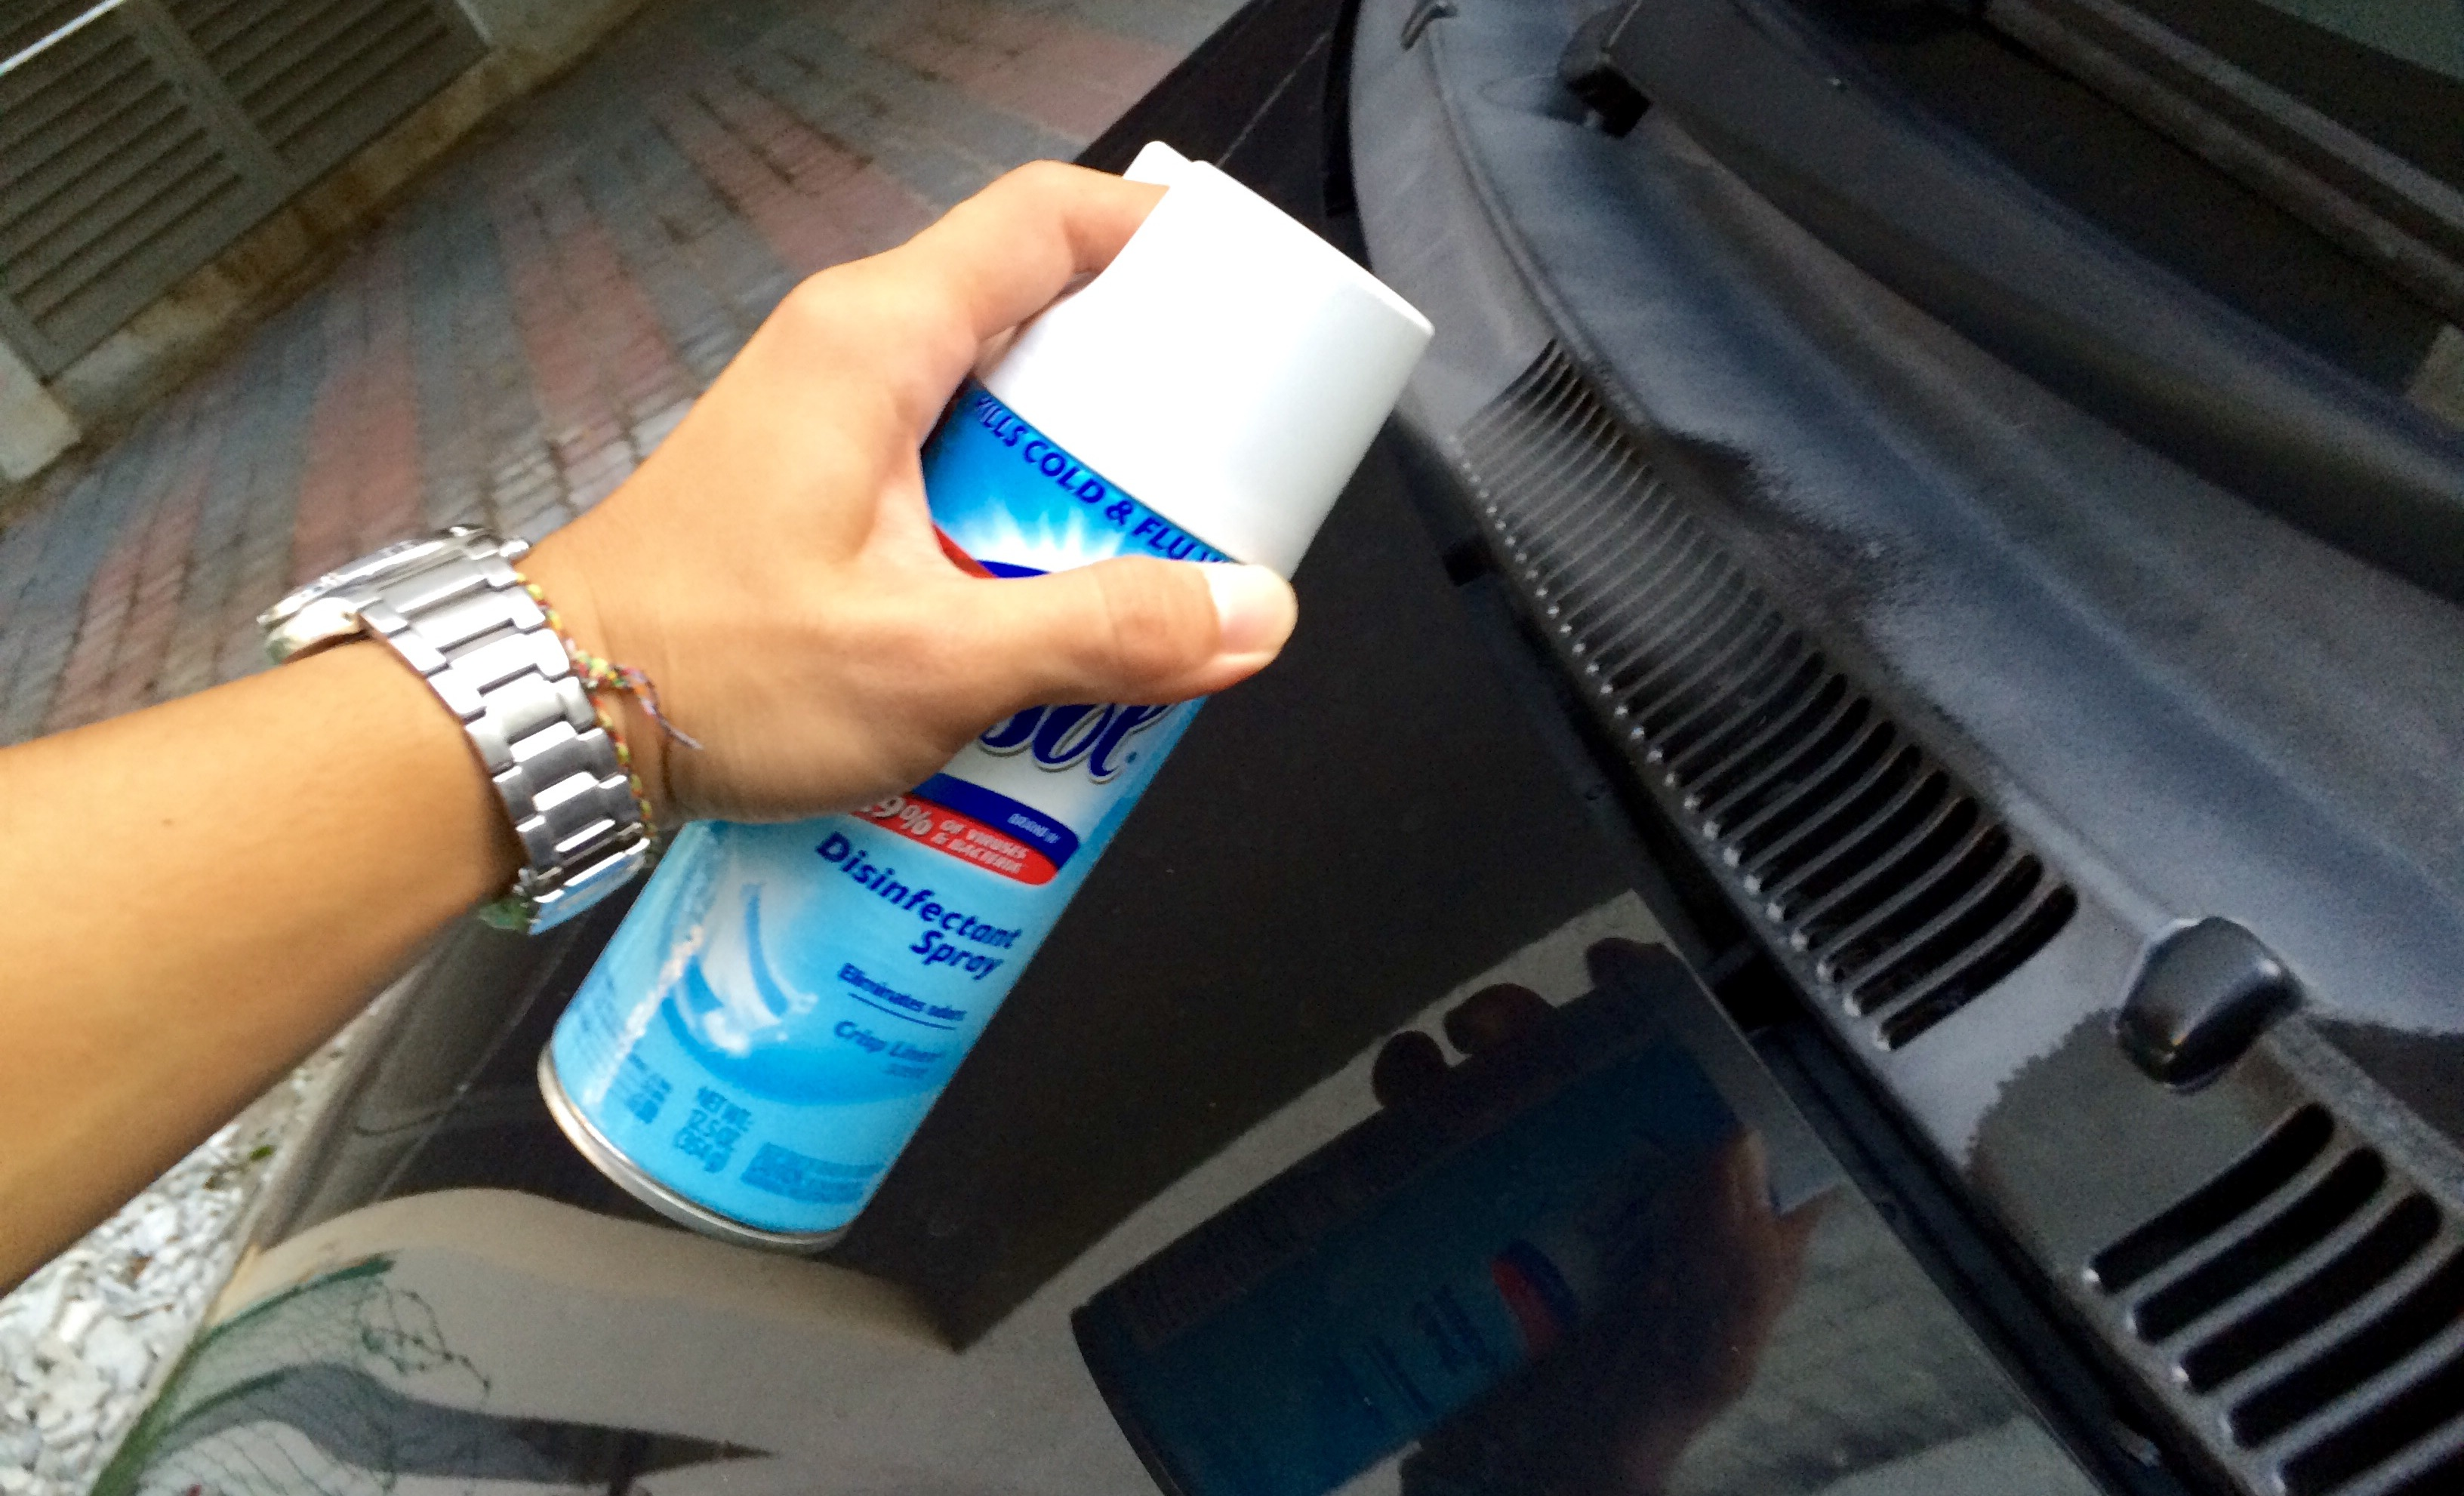 Diy Airco Diy Fix Bad Smell In Car Air Conditioner With Lysol